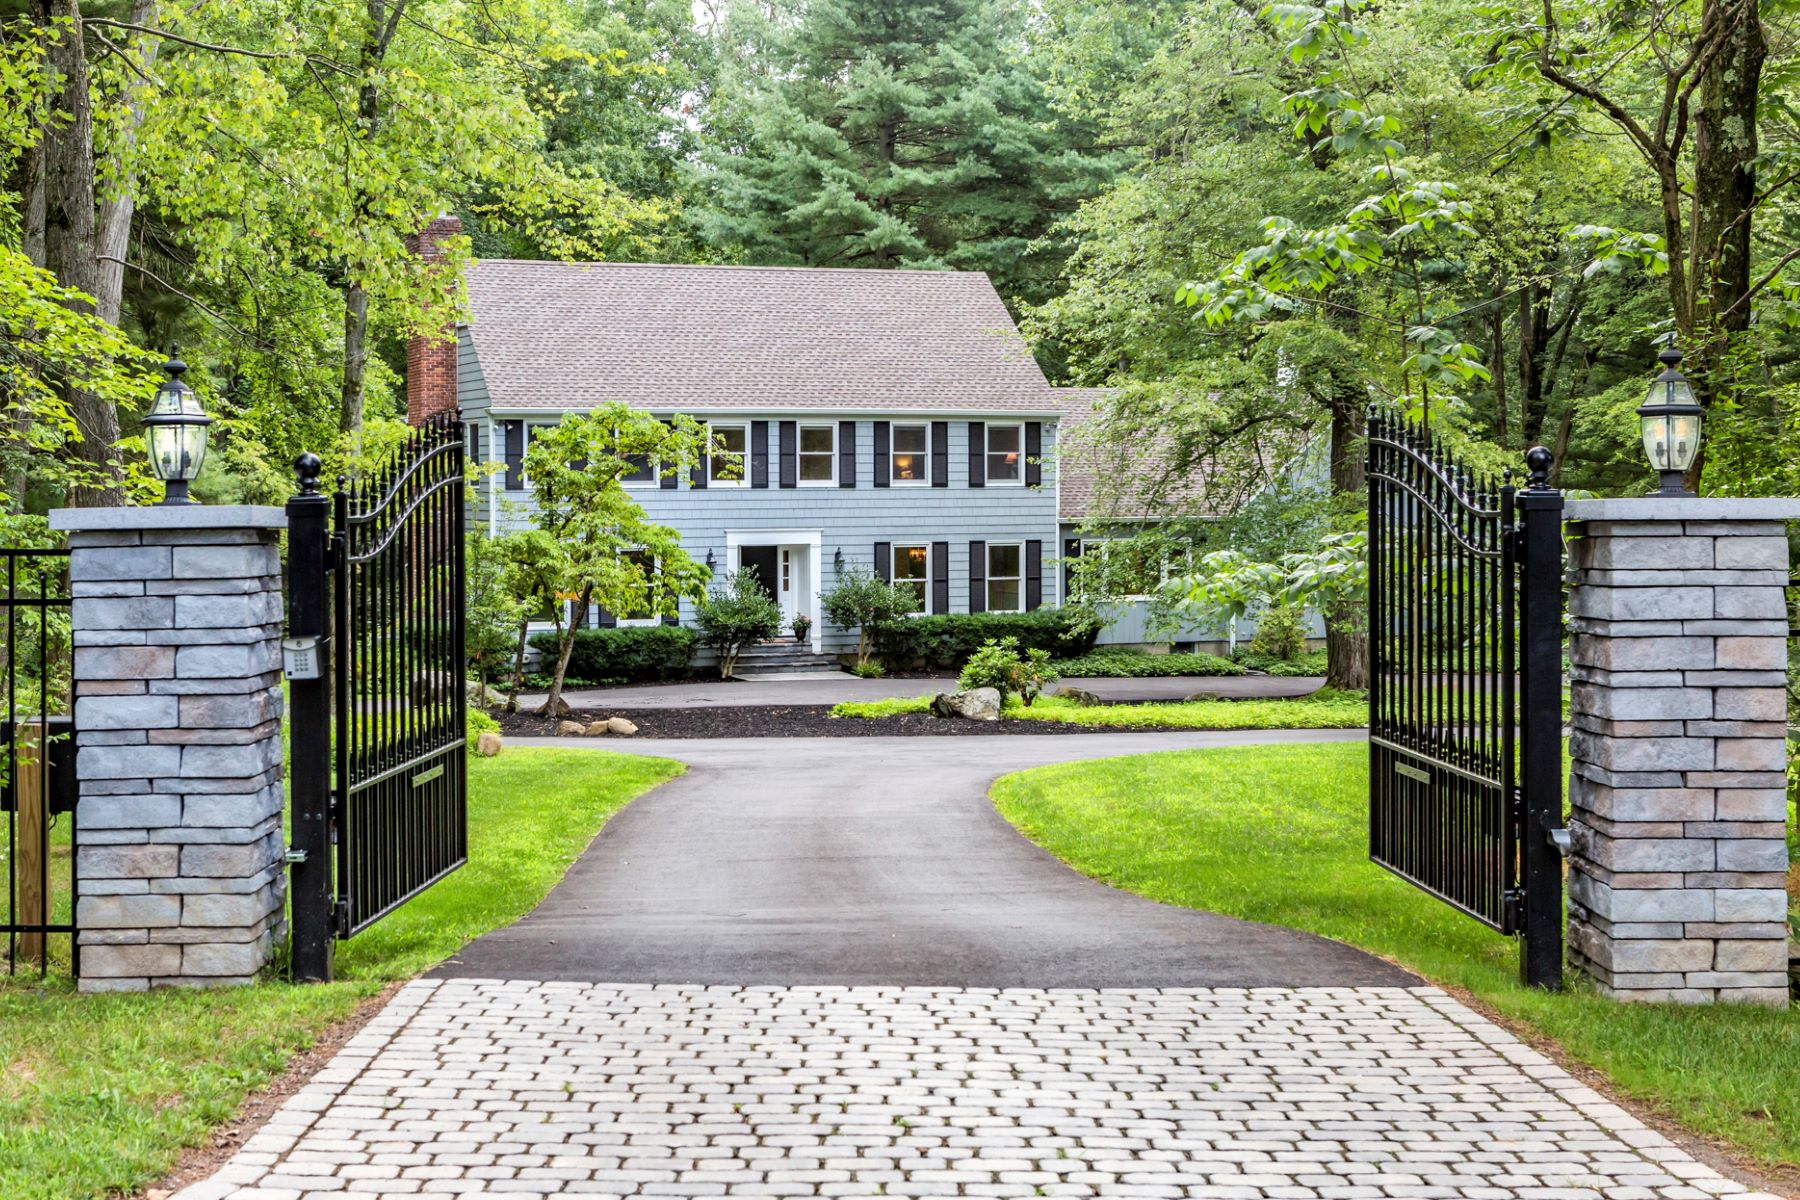 Property for Sale at Captivating with Leafy Views and Endless Updates 1772 Stuart Road West, Princeton, New Jersey 08540 United States